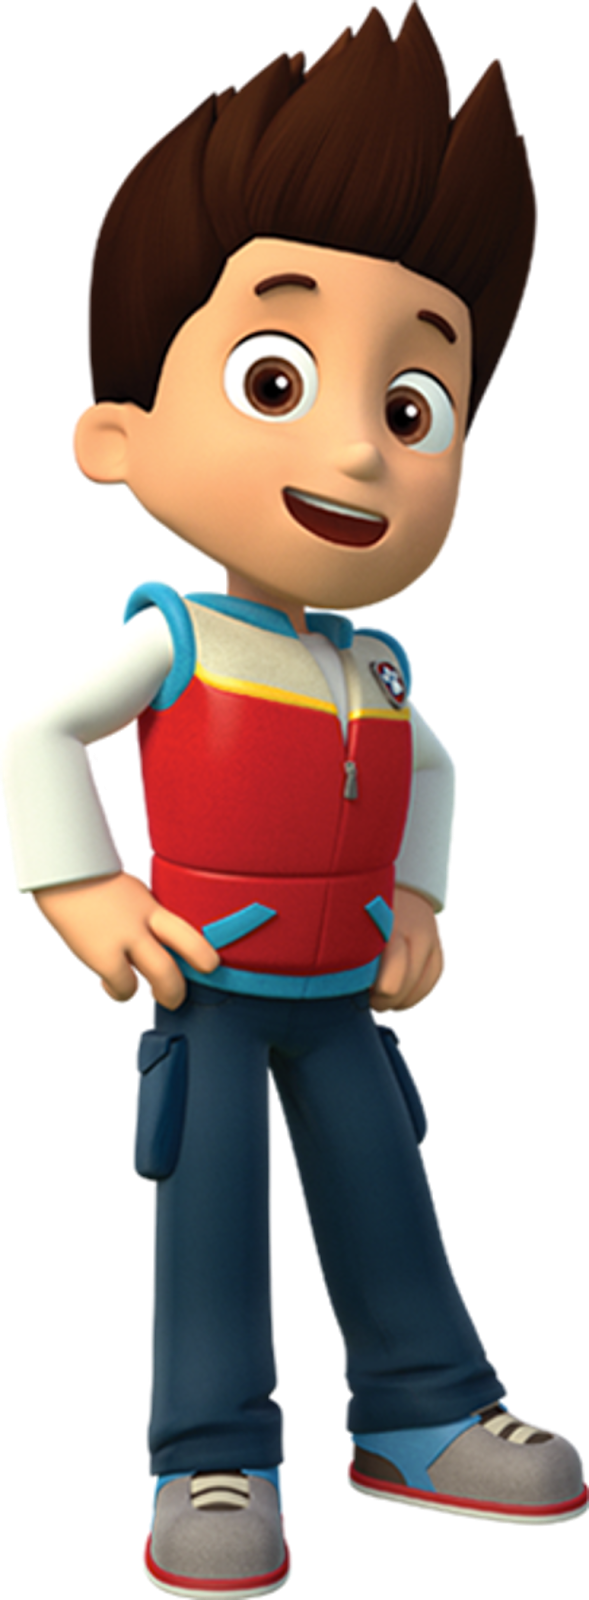 Paw patrol ryder png. Poses by kaylor on